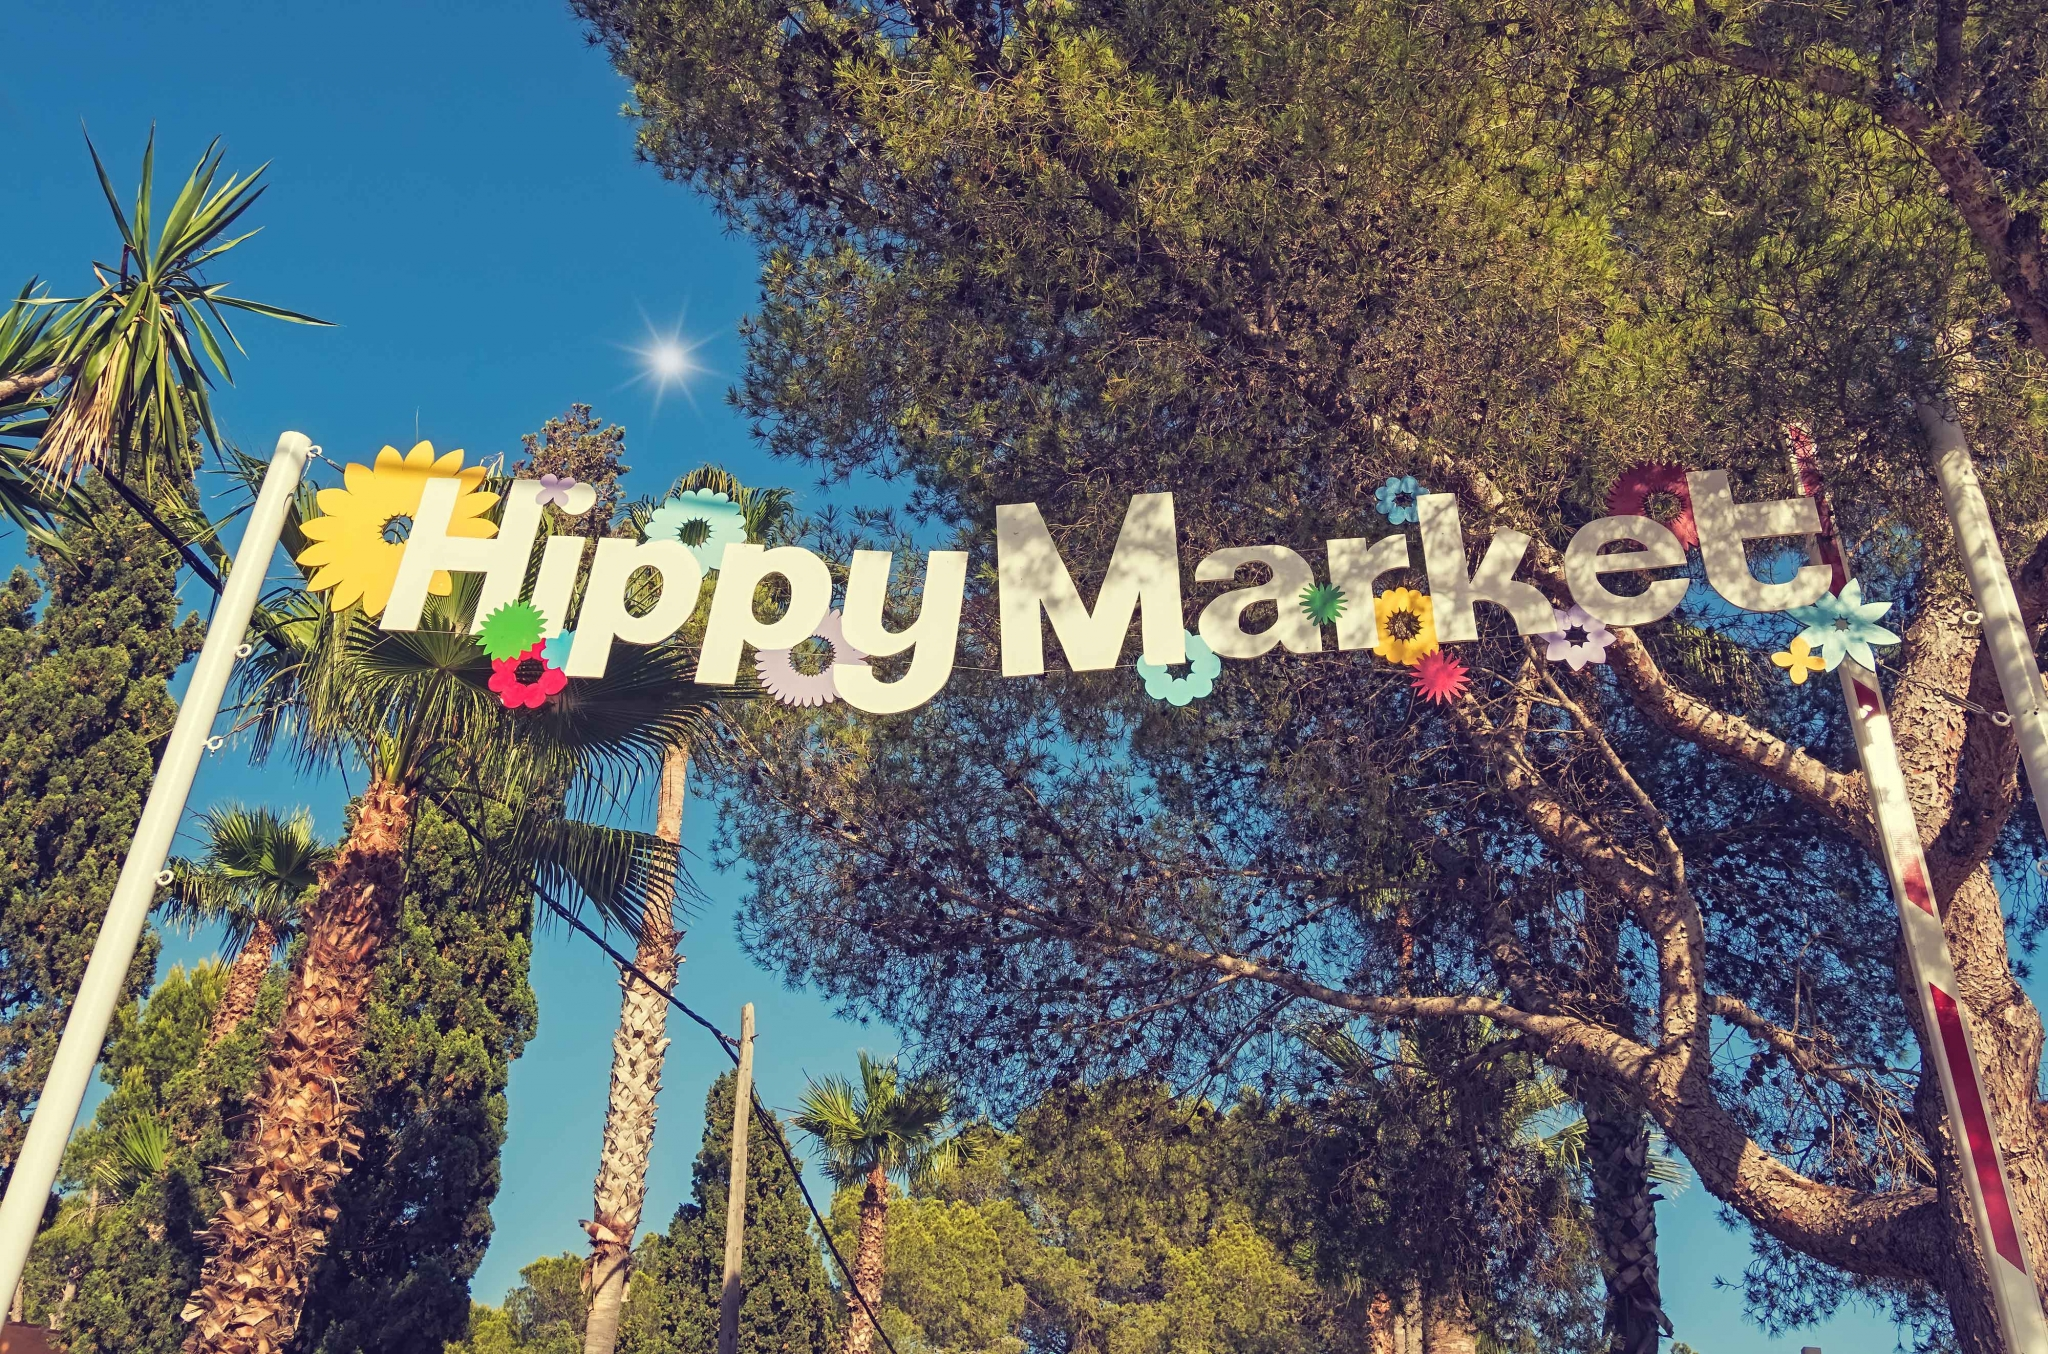 Entrance to a market with a big sign saying 'Hippy Market', in Ibiza